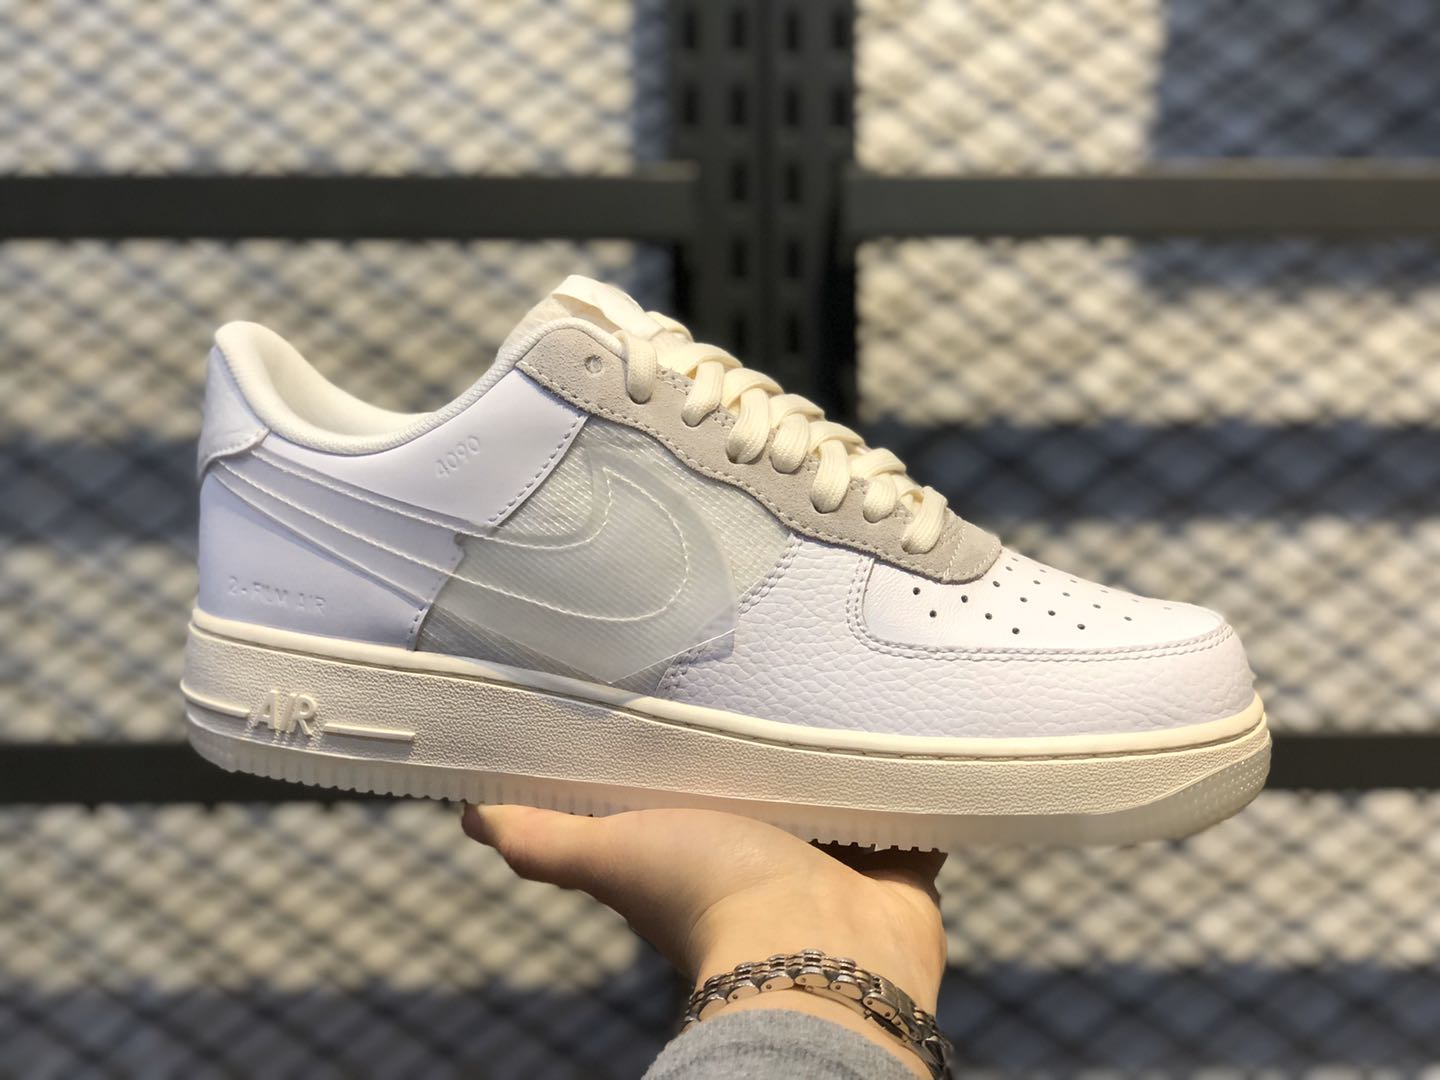 Nike Air Force 1 Low DNA White/Natural Hot Sale CV3040-100